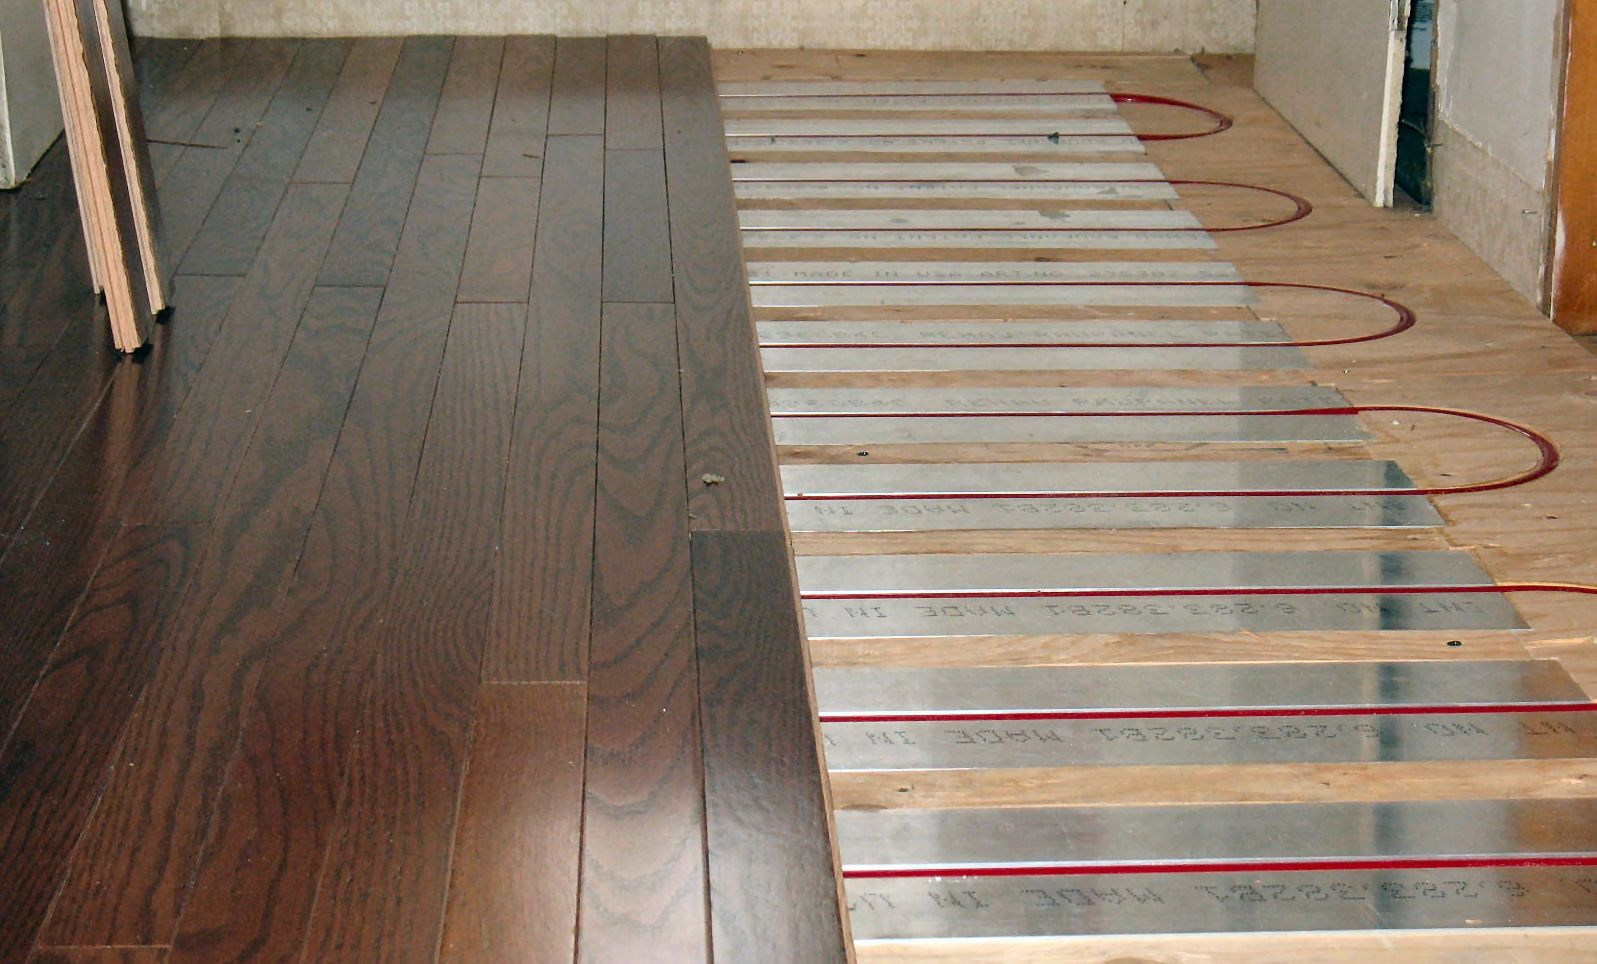 Hydronic Radiant Floor Heating Hardwood Hydronic Radiant Floor Heating Floor Heating Systems Radiant Floor Heating